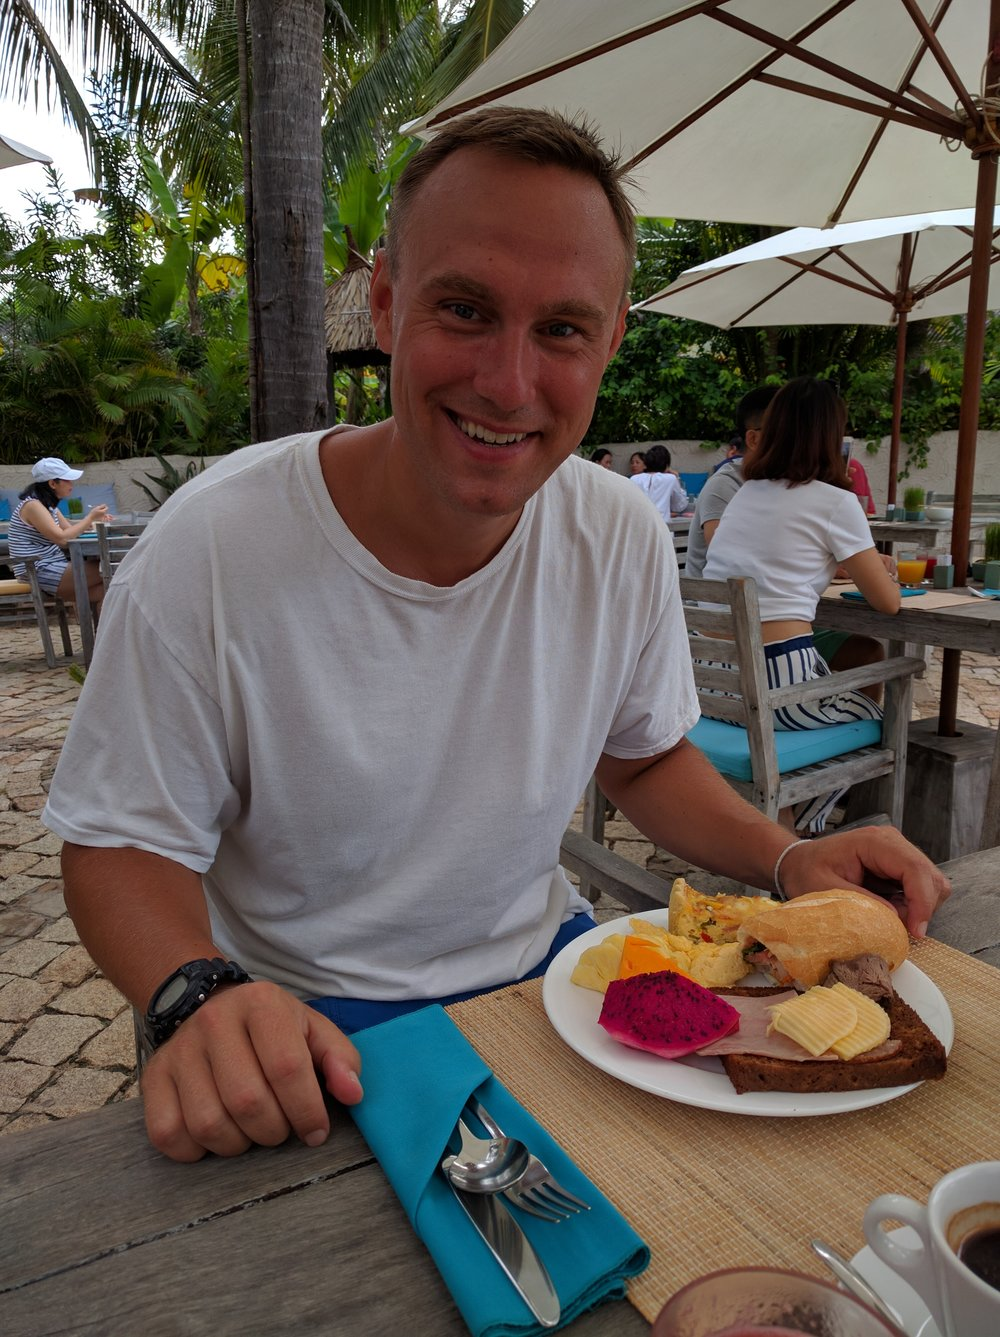 Round 1 of breakfast for me at the Mia Mui Ne Resort -- I haven't eaten lunch in four days